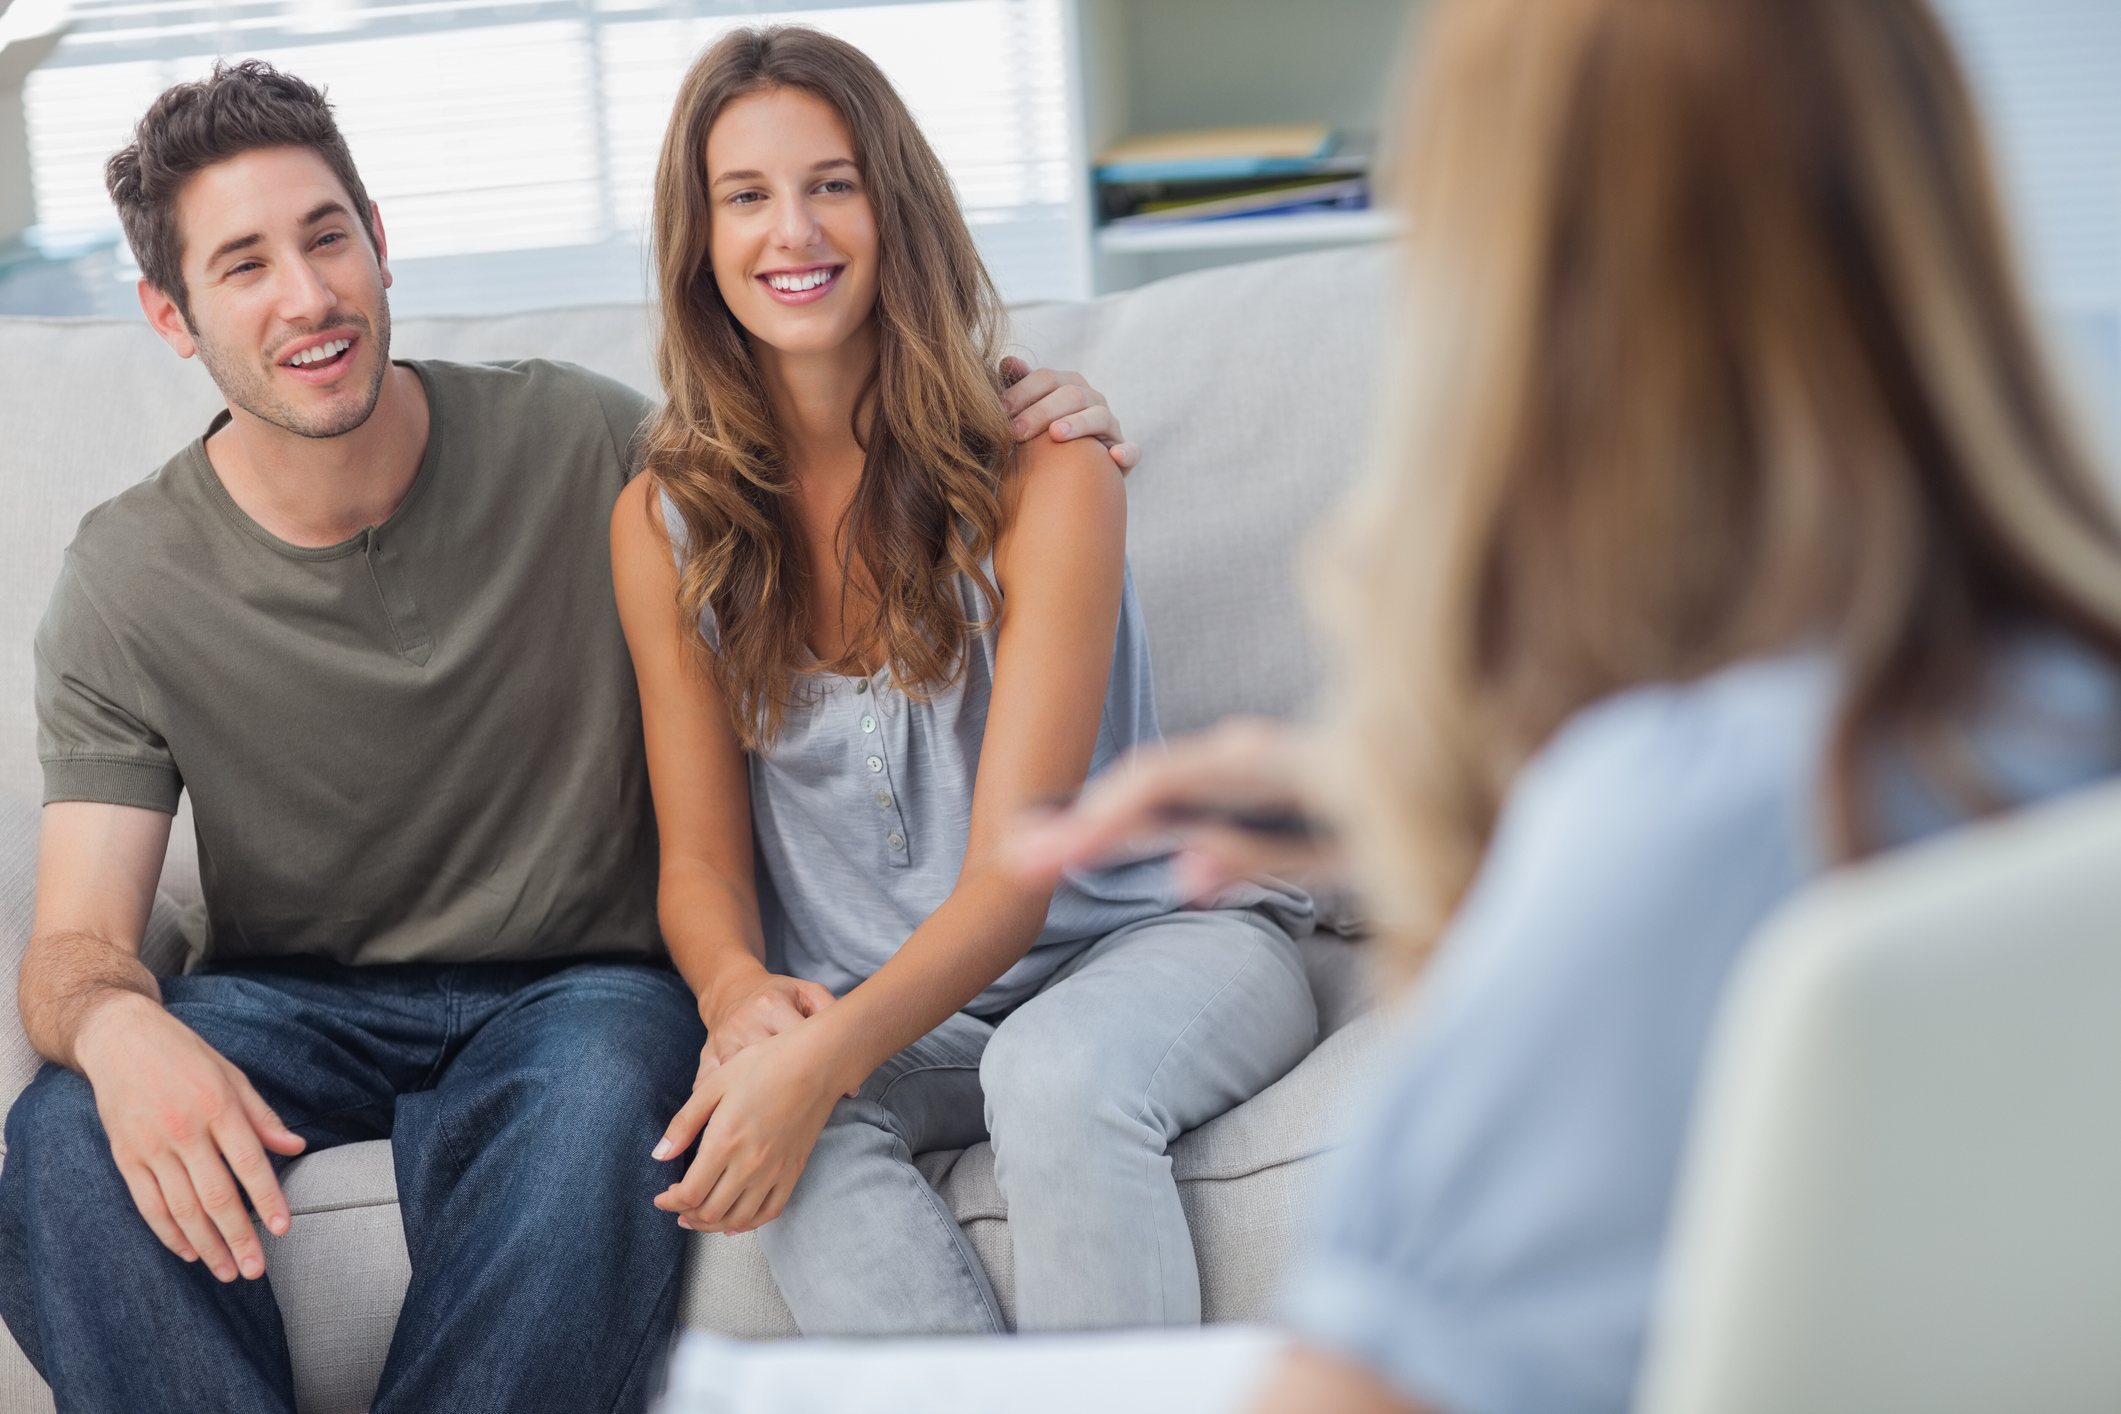 North Berkeley Couples Therapy Center - Our highly specialized clinicians utilize innovative treatment modalities for relationships & sex issues, trauma, and attachment healing.